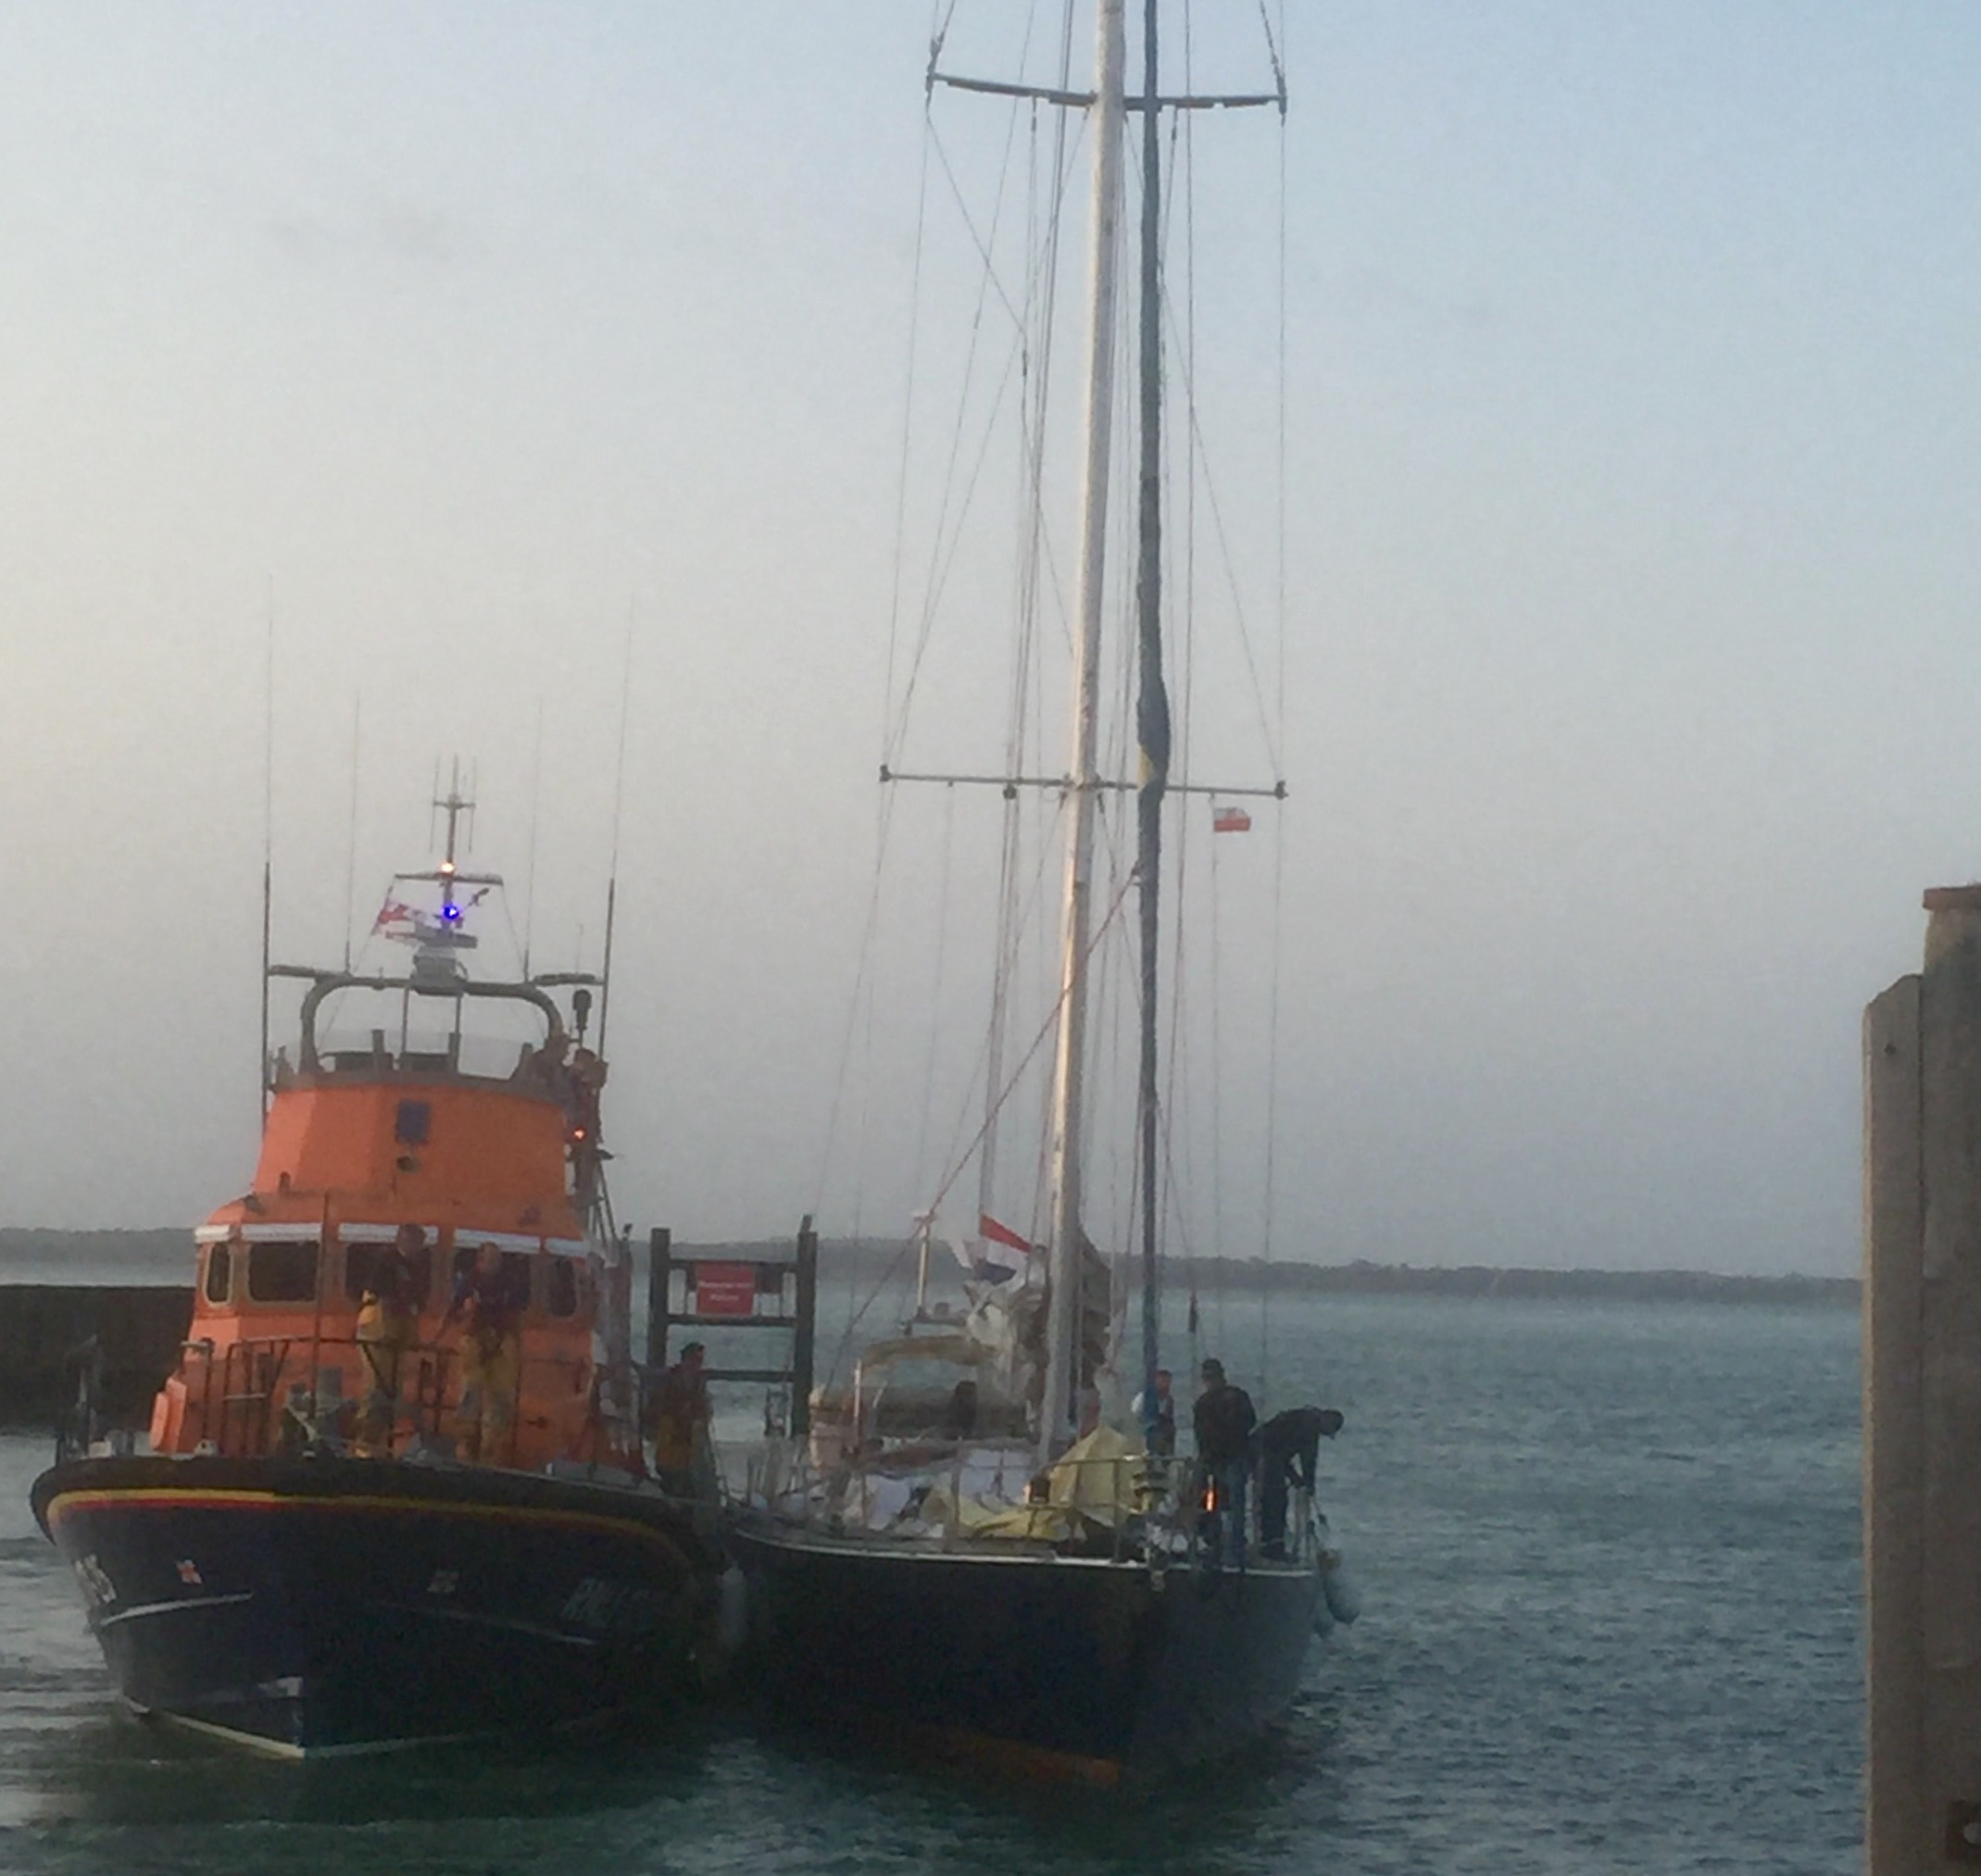 Yarmouth RNLI assists 67 foot yacht 'Elinca' into Yarmouth harbour